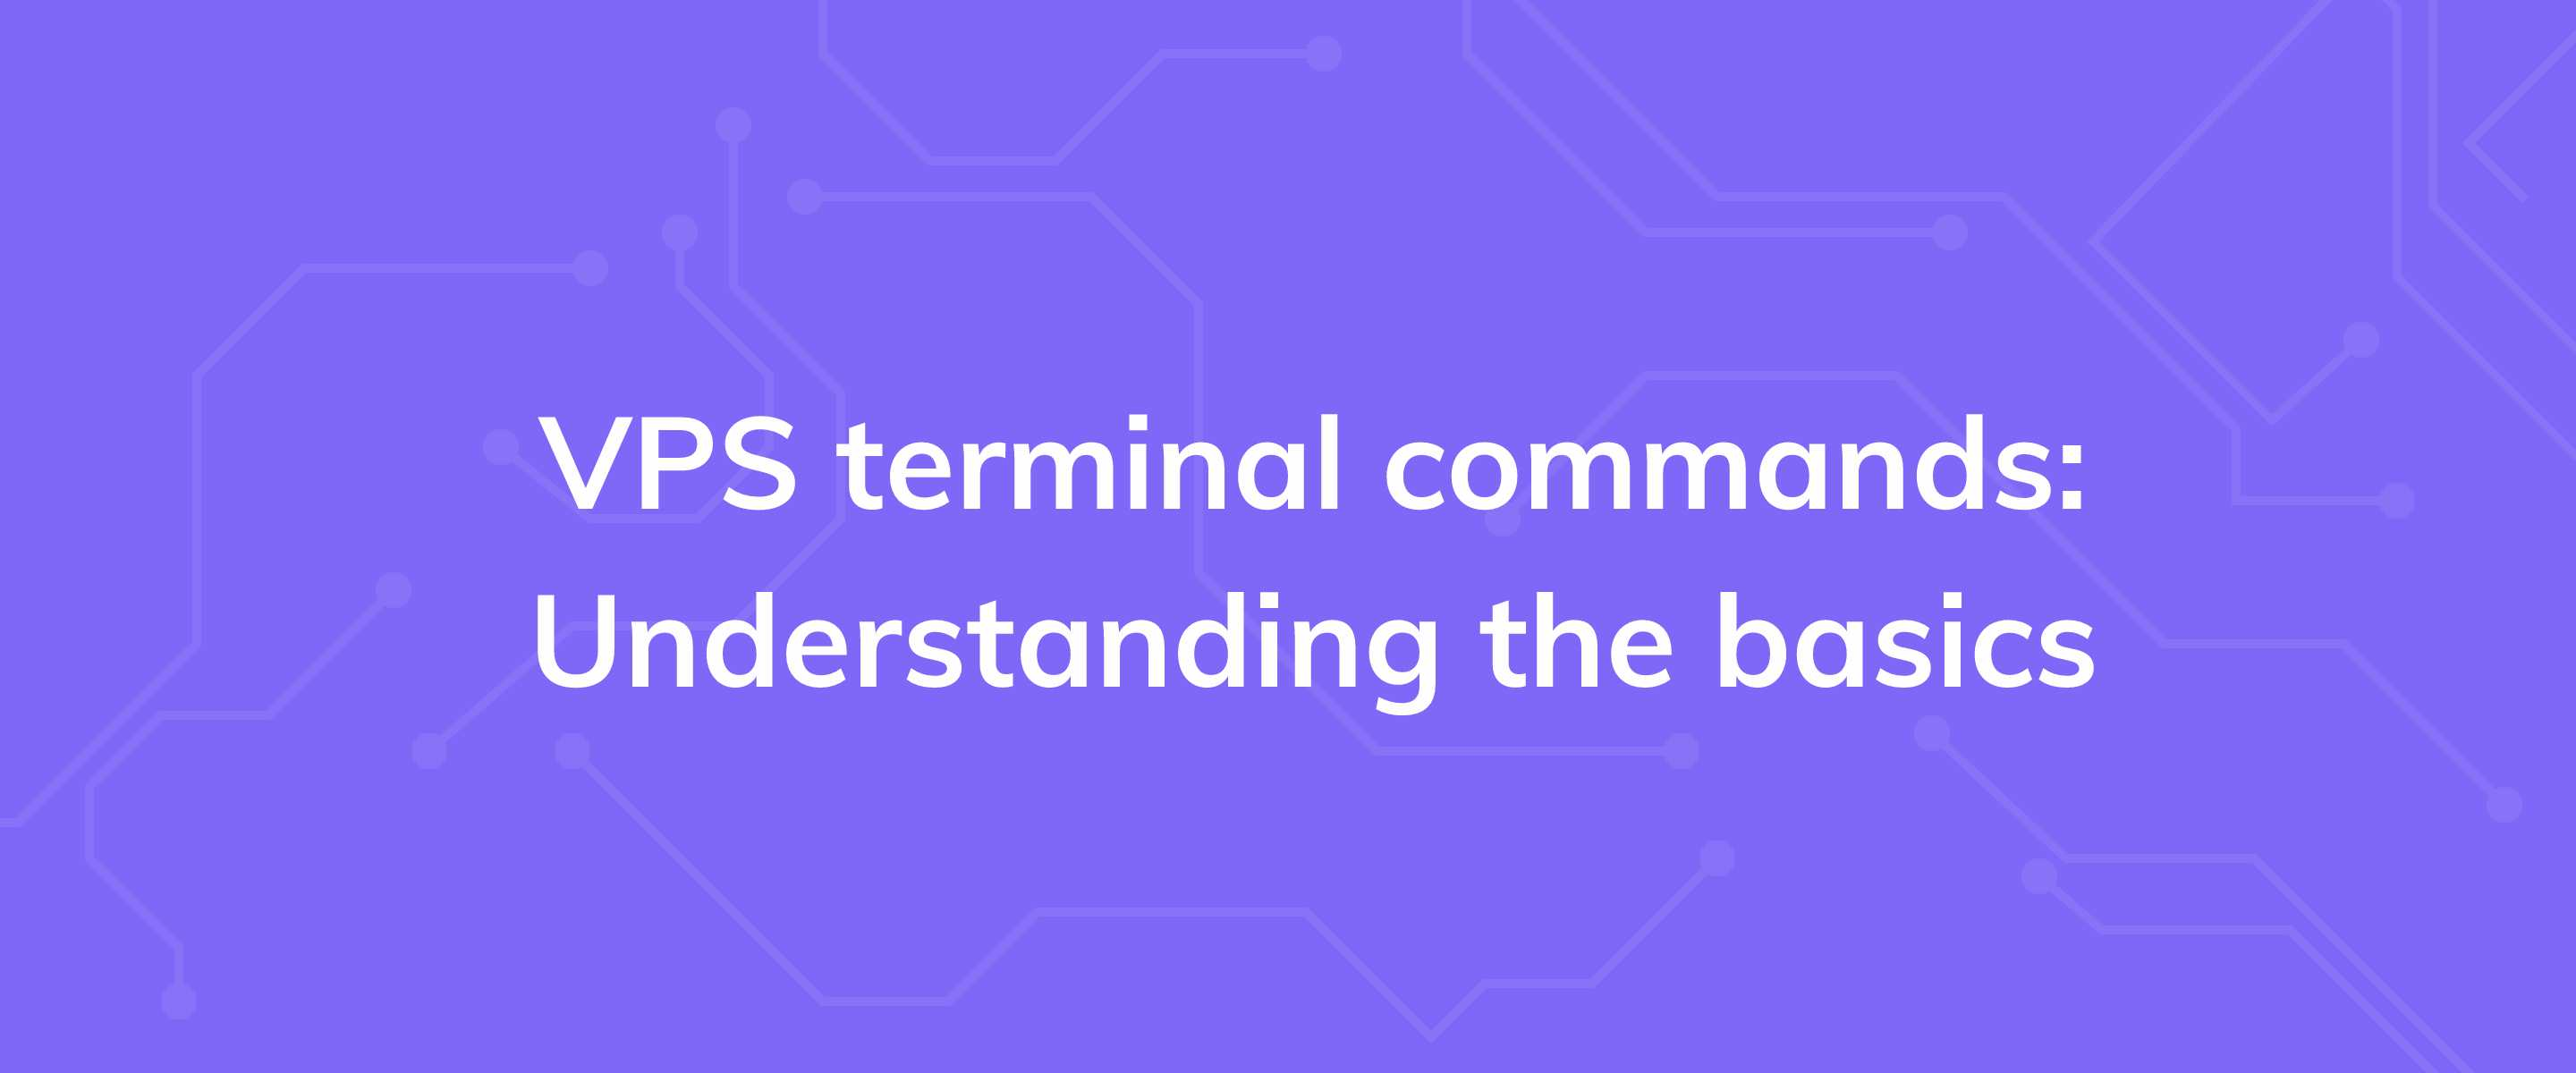 VPS terminal commands: Understanding the basics